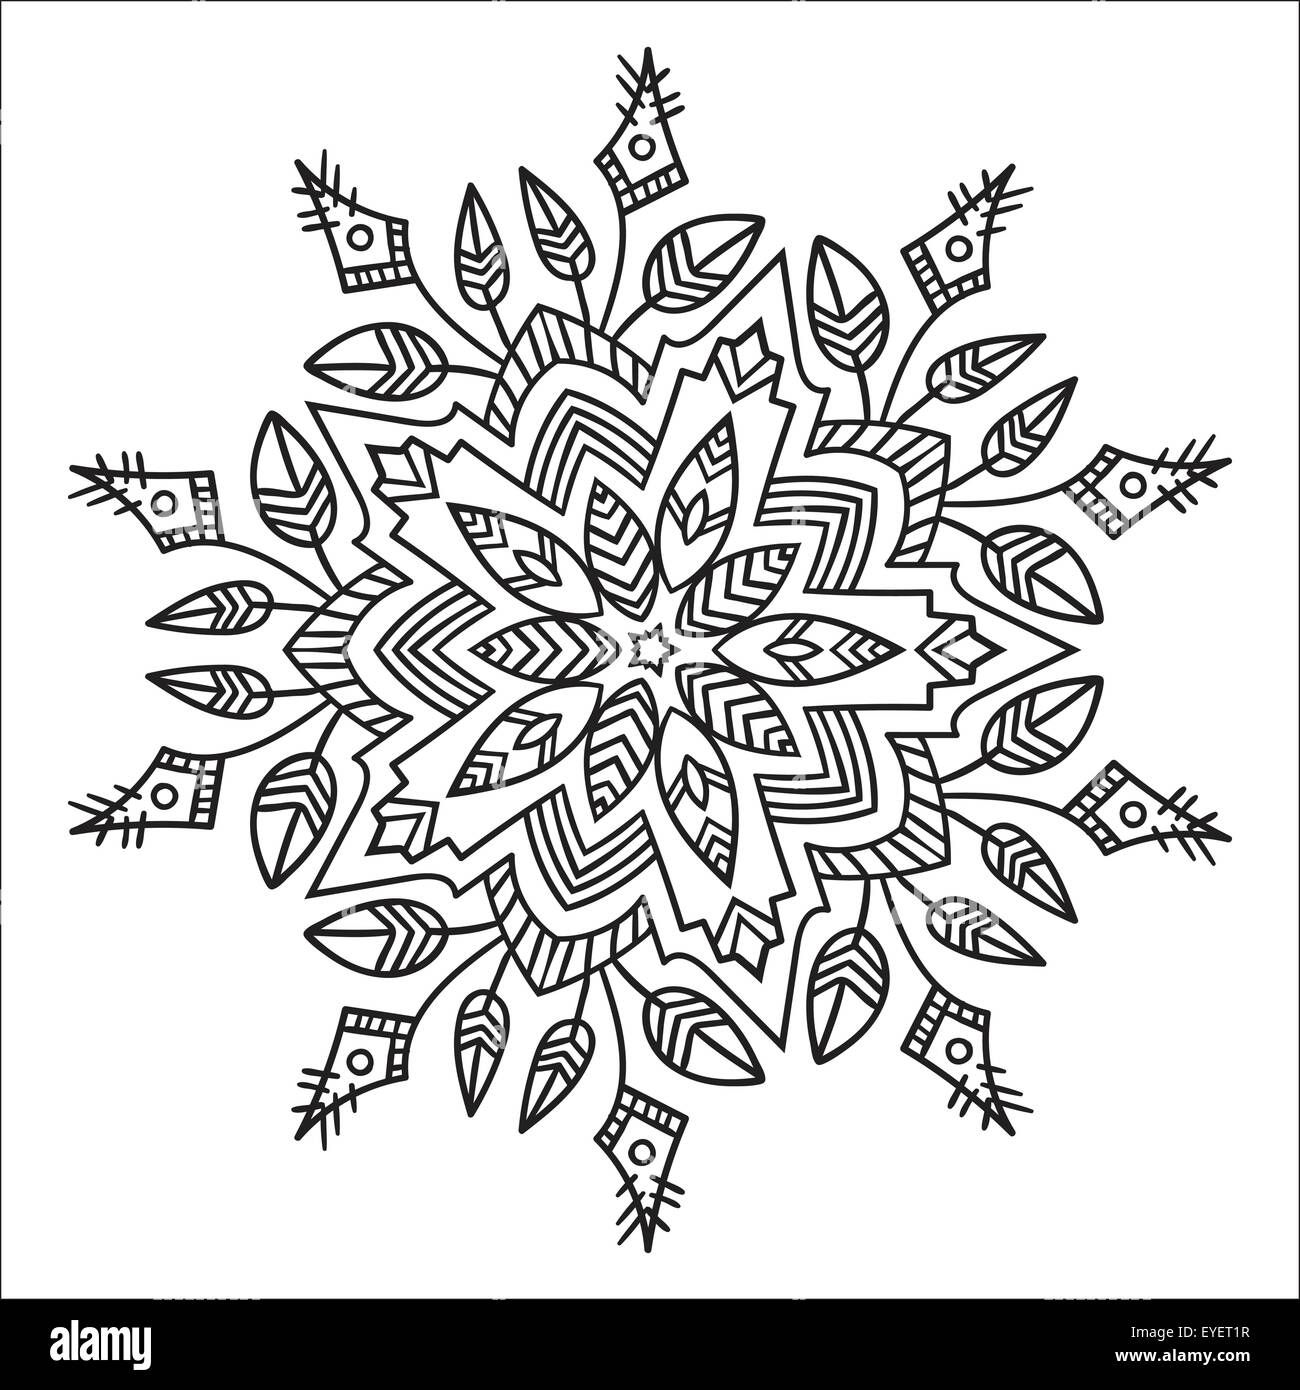 Poster design drawing - Hand Drawing Zentangle Element Black And White Flower Mandala Vector Illustration The Best For Your Design Textiles Poster